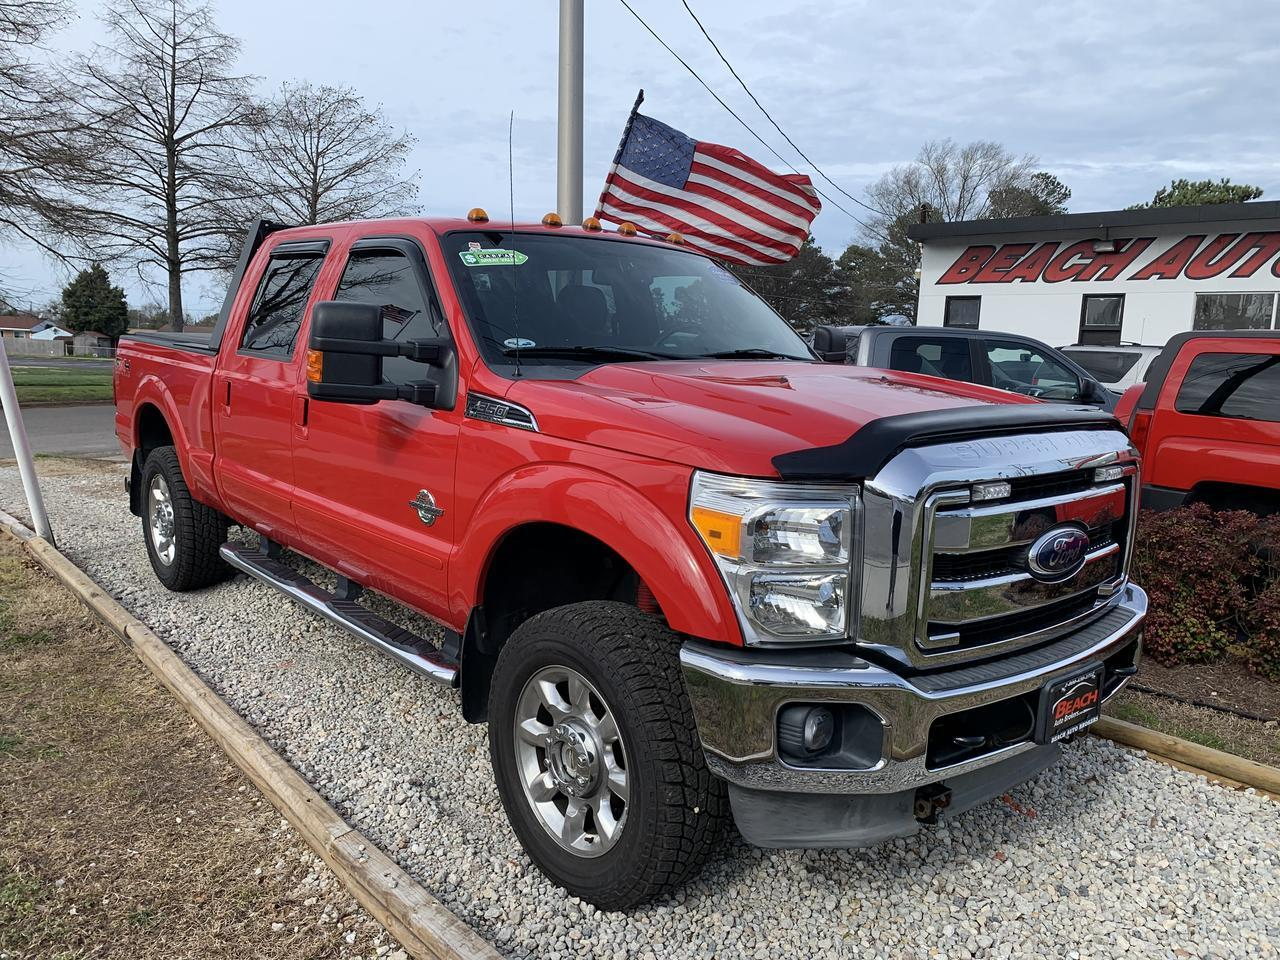 2011 FORD F-350 LARIAT CREW CAB 4X4, WARRANTY, LEATHER, FX4 OFF ROAD PKG, HEATED/COOLED SEATS,NAV, SUNROOF, 1 OWNER! Norfolk VA